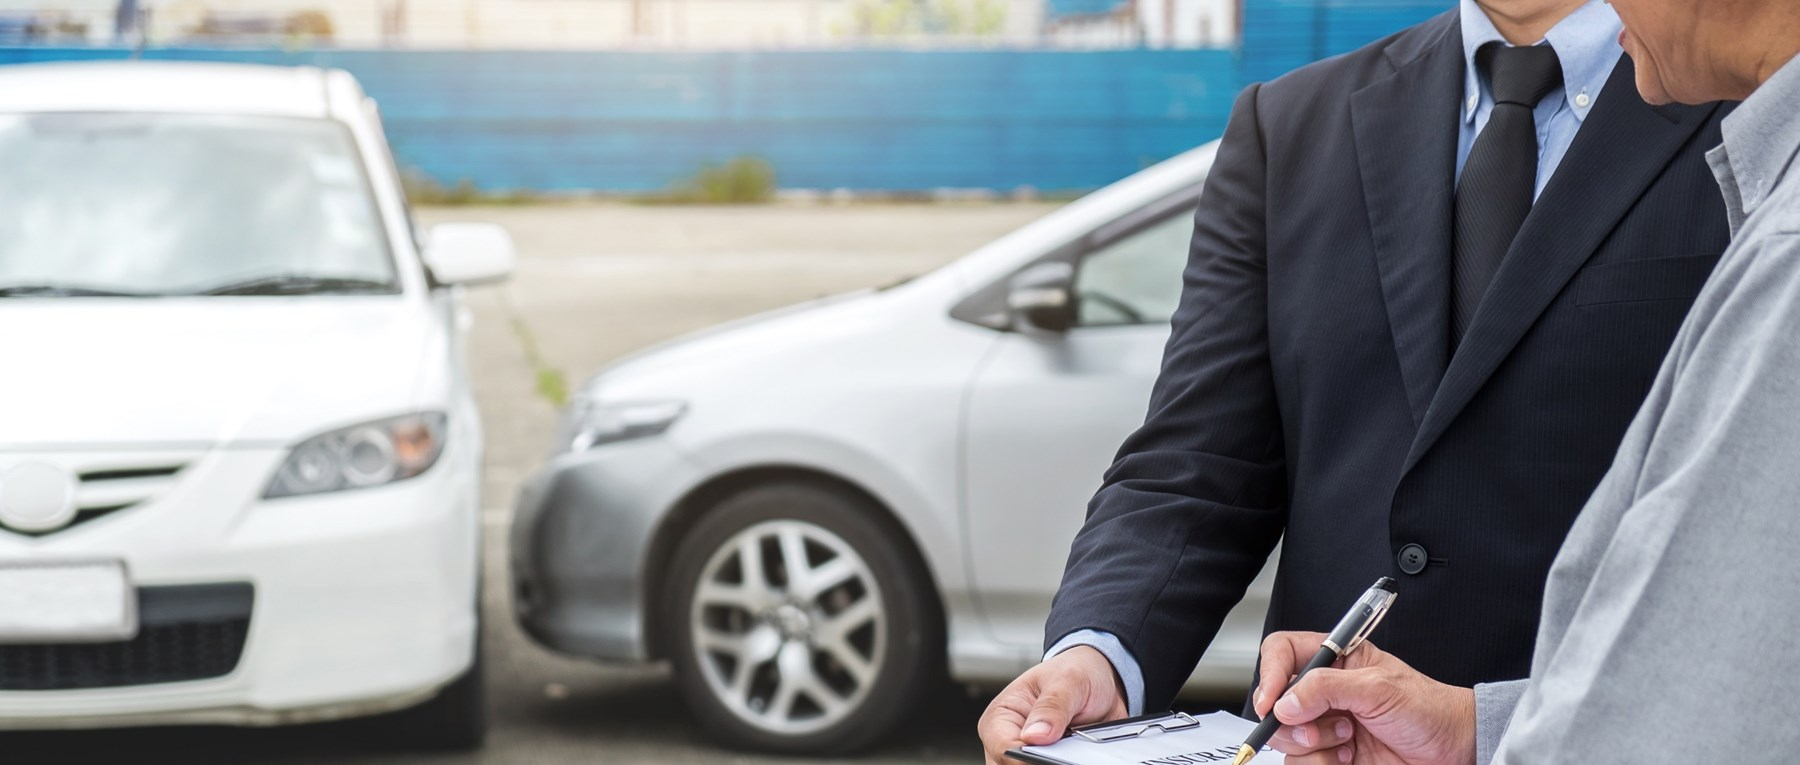 Reporting A Car Accident To Your Insurance Company Rias